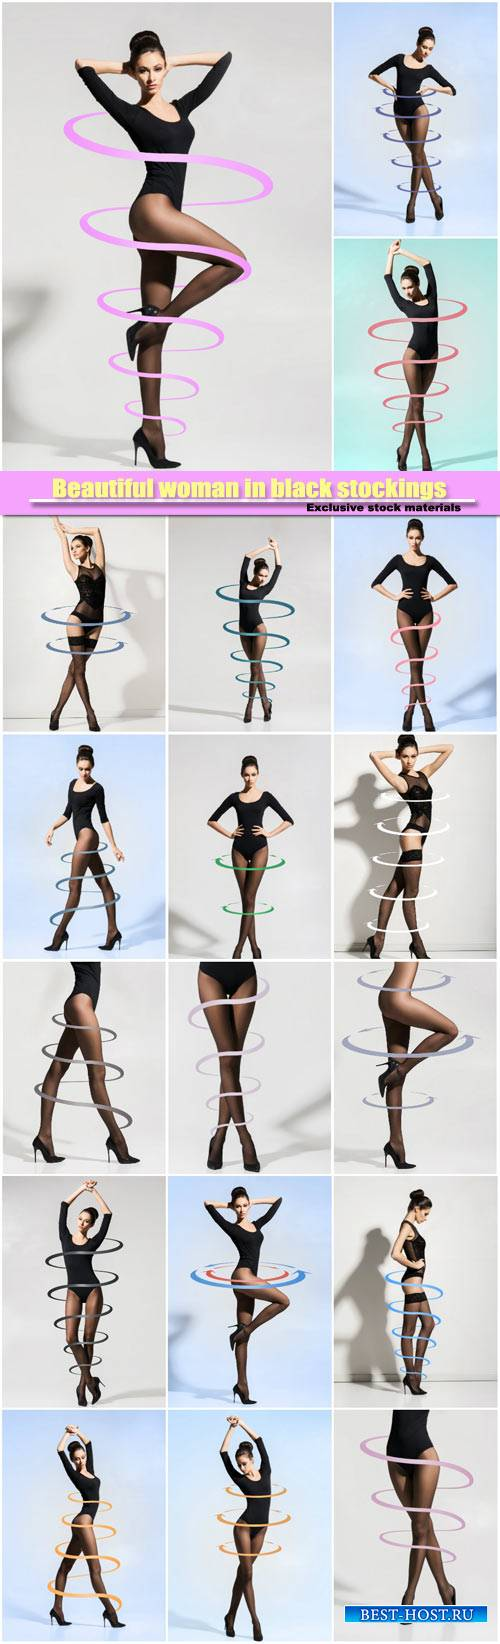 Beautiful woman in black stockings with arrows, fitness, sport and diet con ...